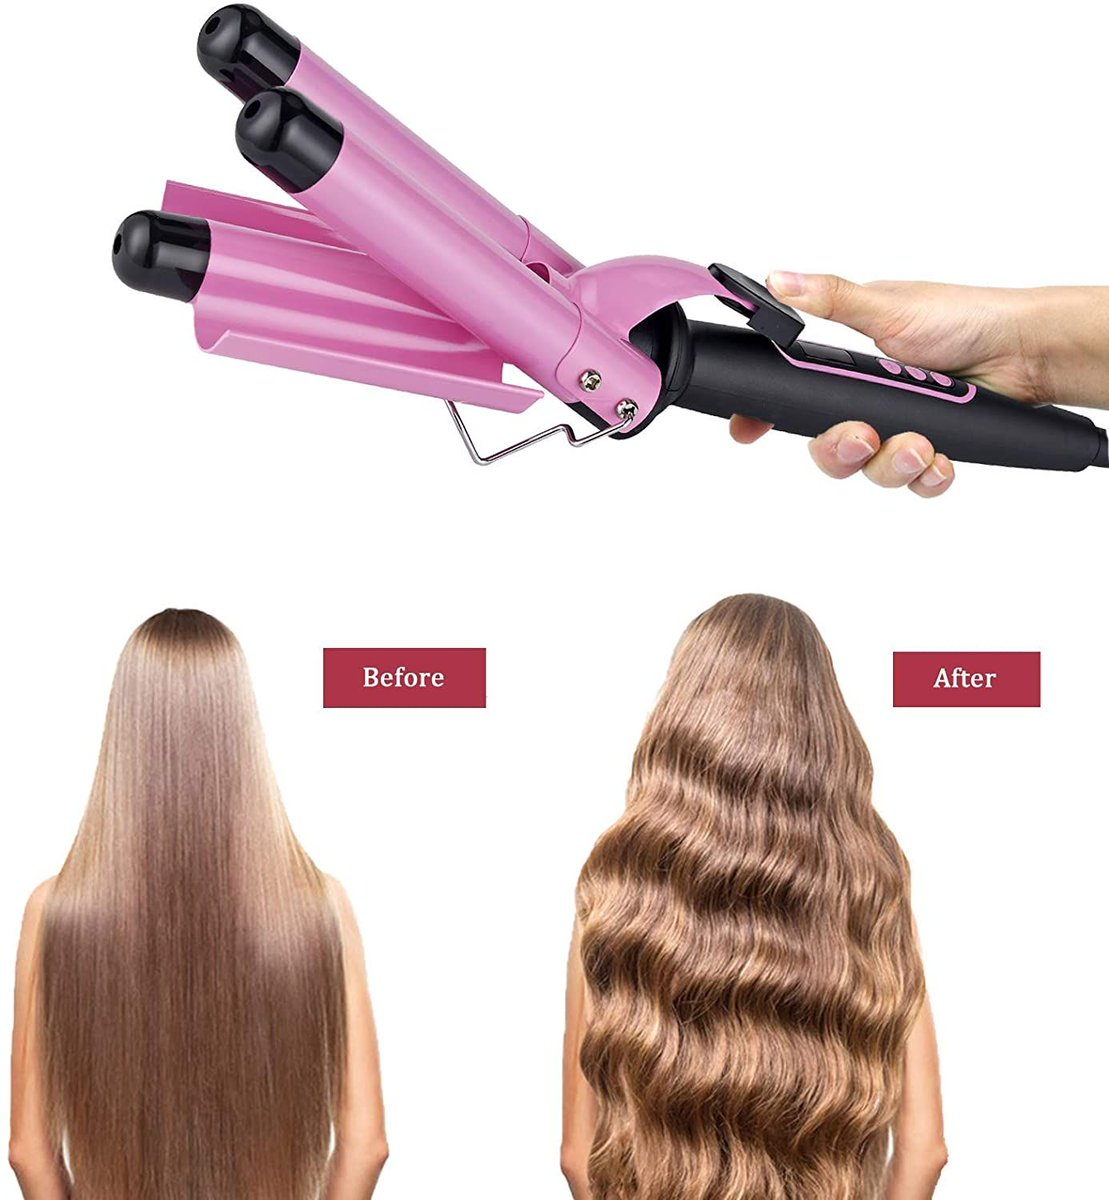 ad: $13.99 (60% off)  3-Barrel Hair Curling Iron   Link0 Link0